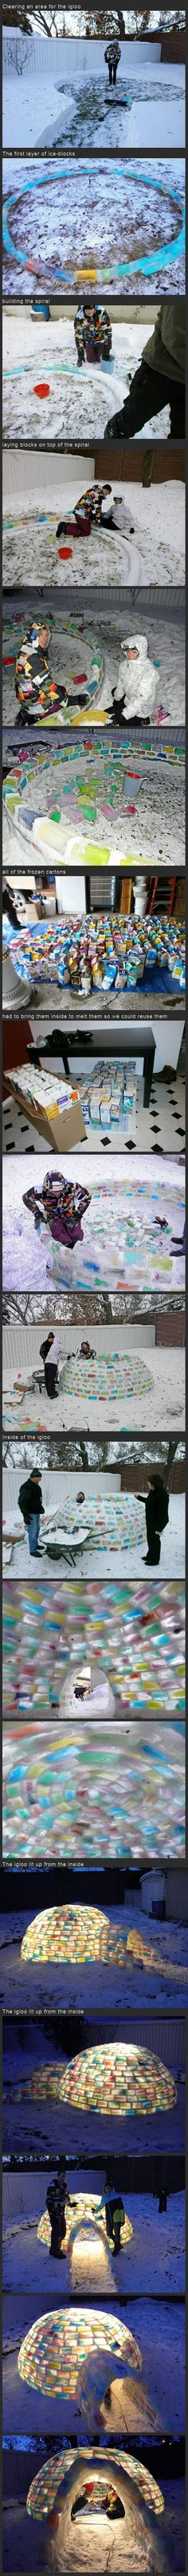 How to build an igloo – 18 Pics